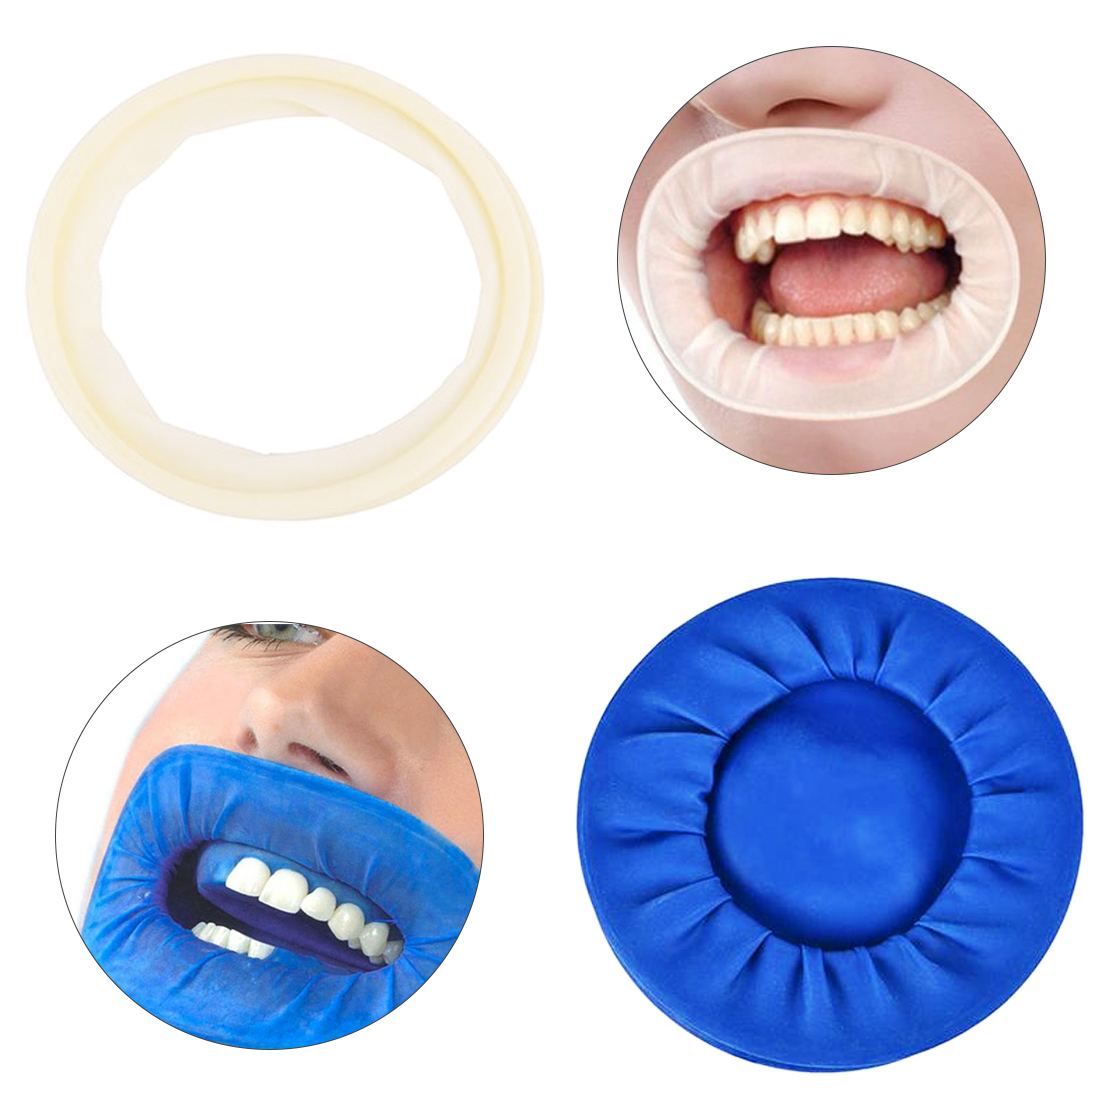 Cheek Expanders Retractor Rubber Dam Mouth Opener Oral Hygiene 1pcs Dental Disposable Rubber Sterile Mouth Opener Oral